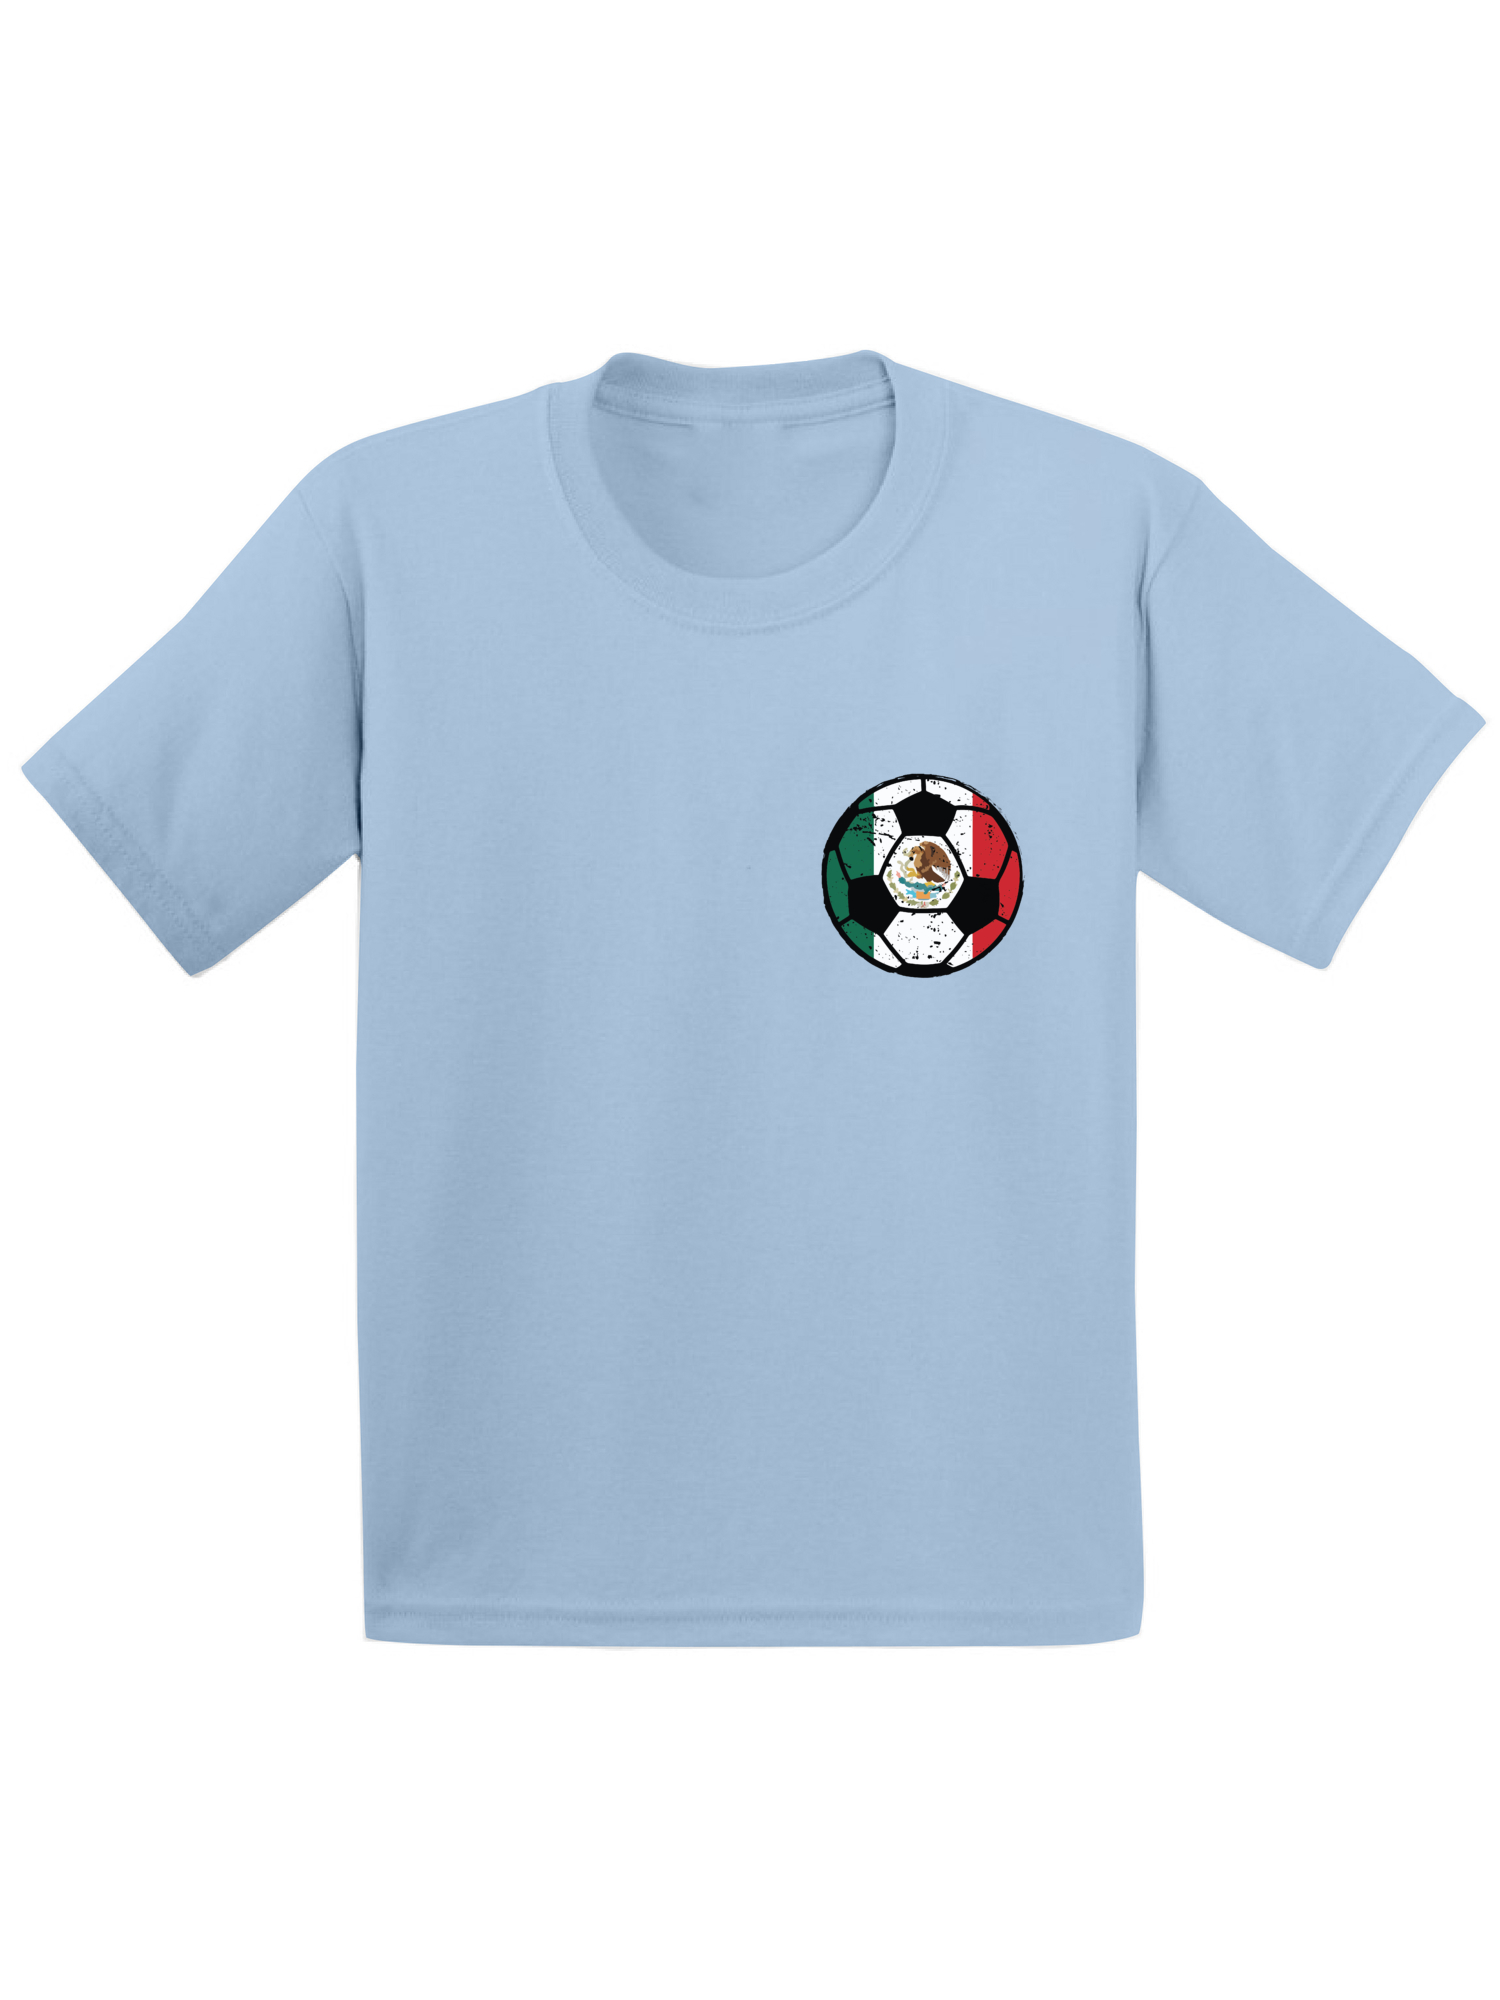 Straight Outta Mexico Mexican Flag Youth Kids T-Shirt Gift Idea